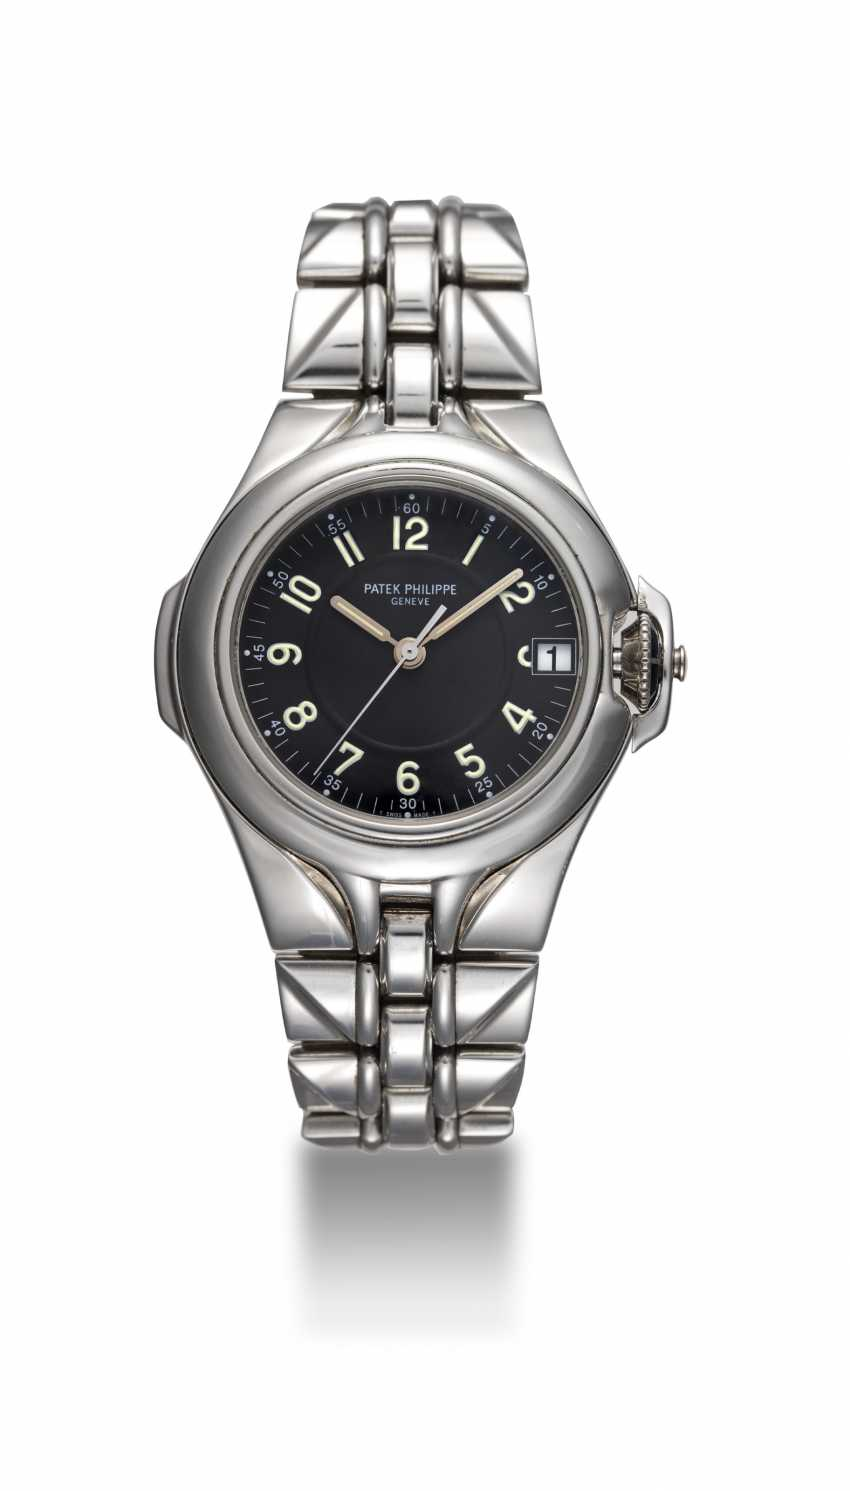 PATEK PHILIPPE, REF. 5091/1, A STEEL WRISTWATCH WITH INTEGRATED BRACELET - photo 3